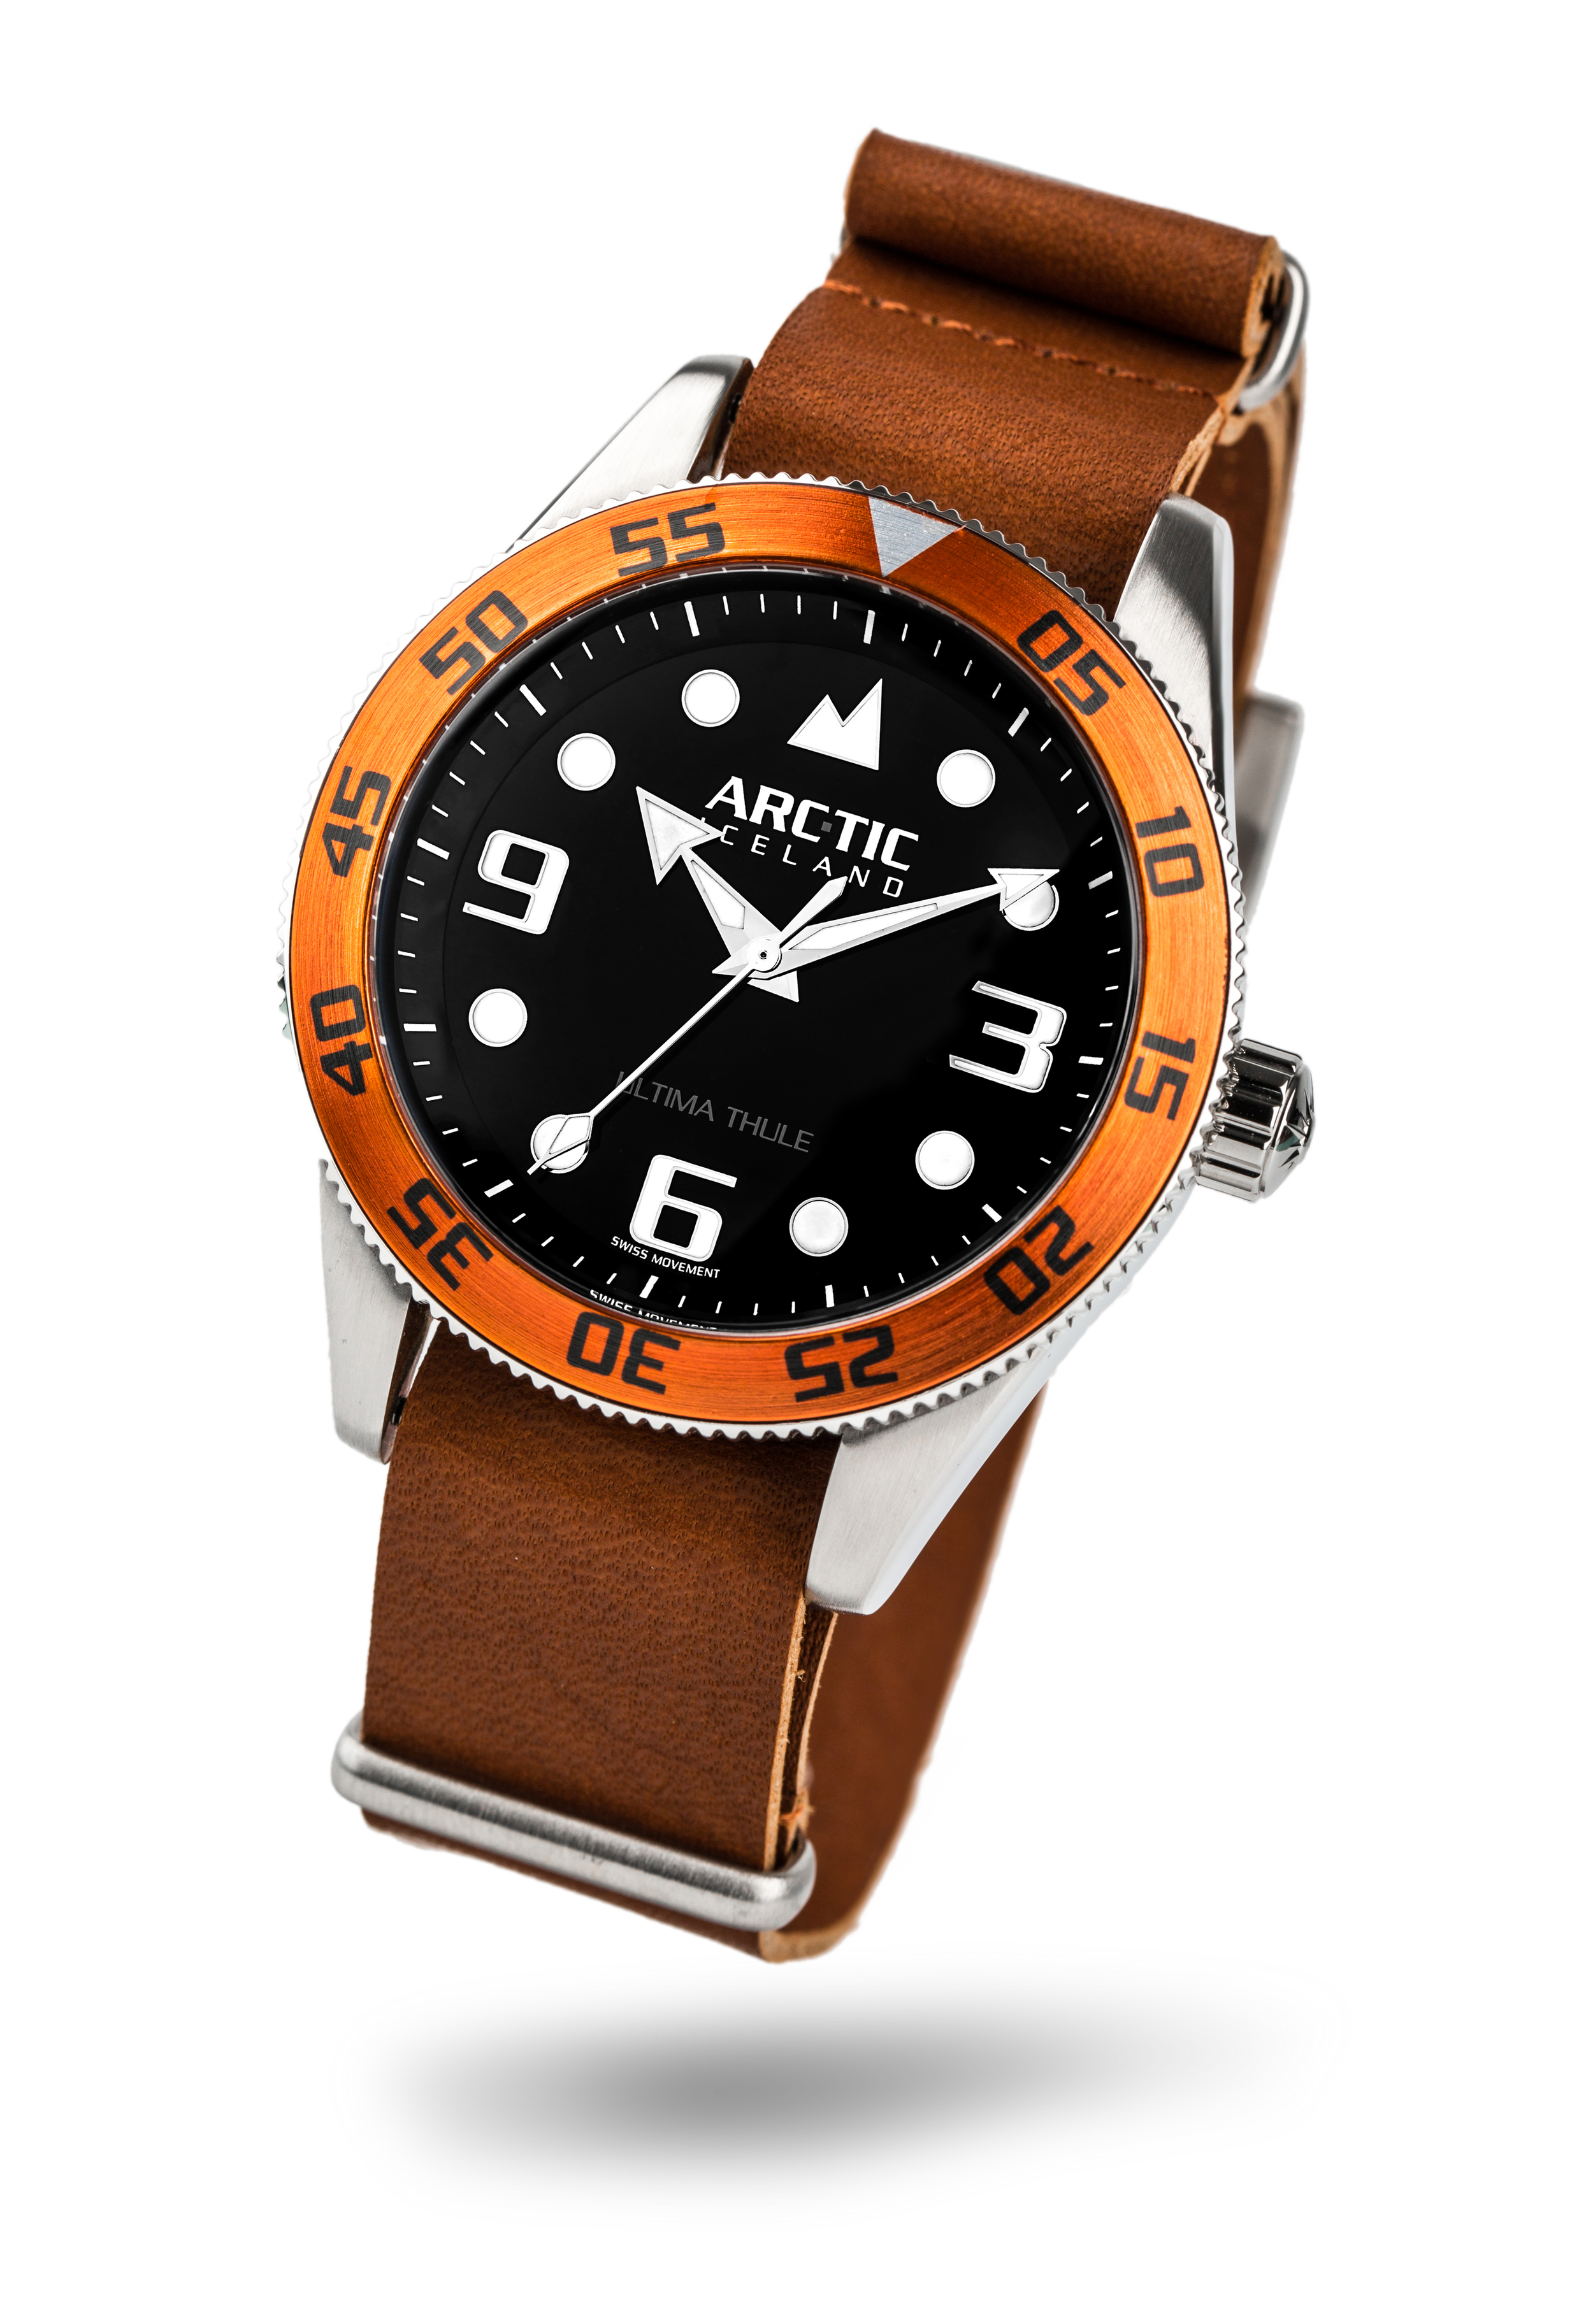 ARC-TIC Iceland UT Orange with leather strap  Learn More